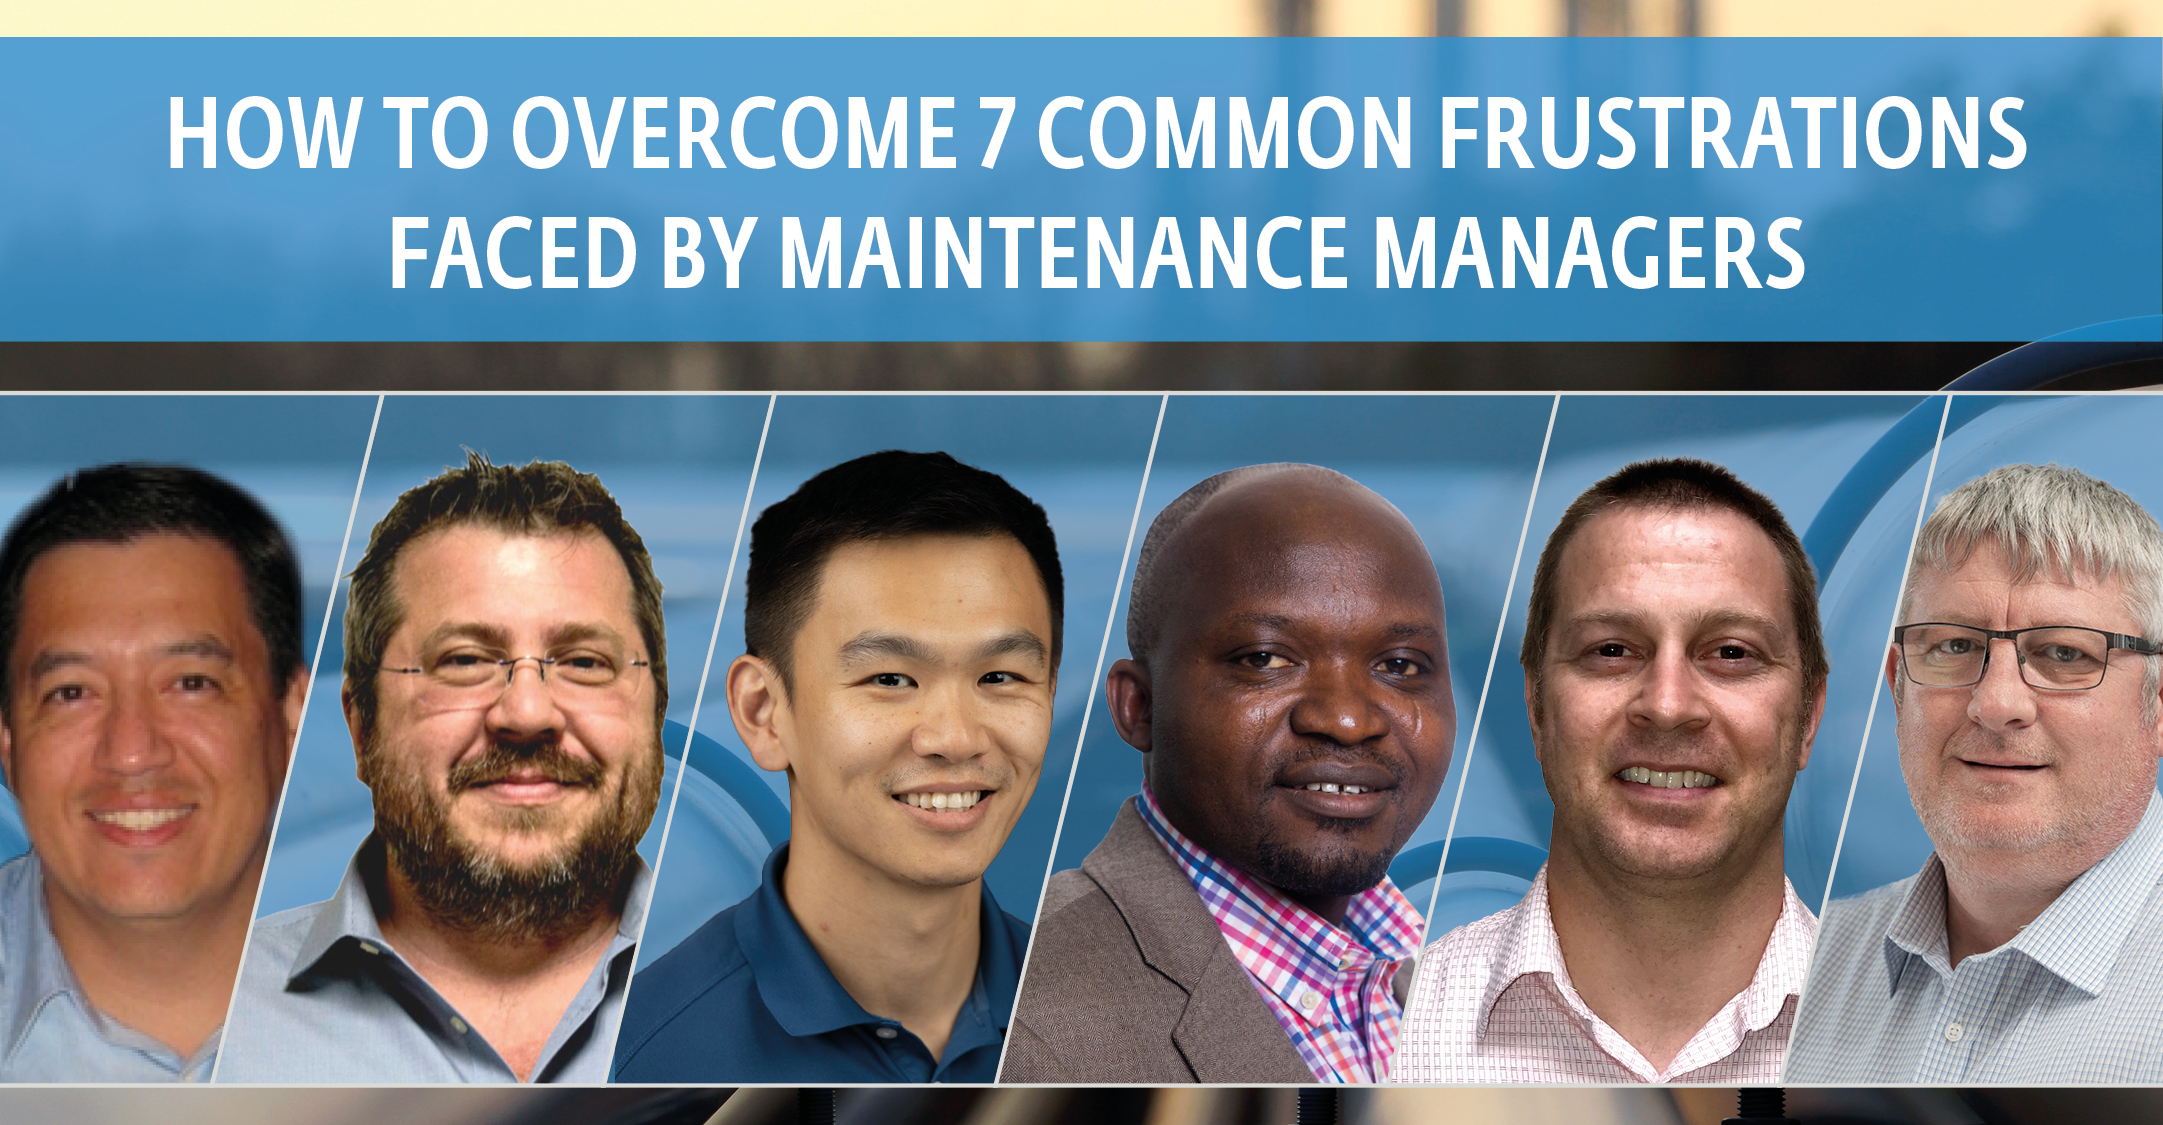 How to overcome 7 common frustrations faced by Maintenance Managers